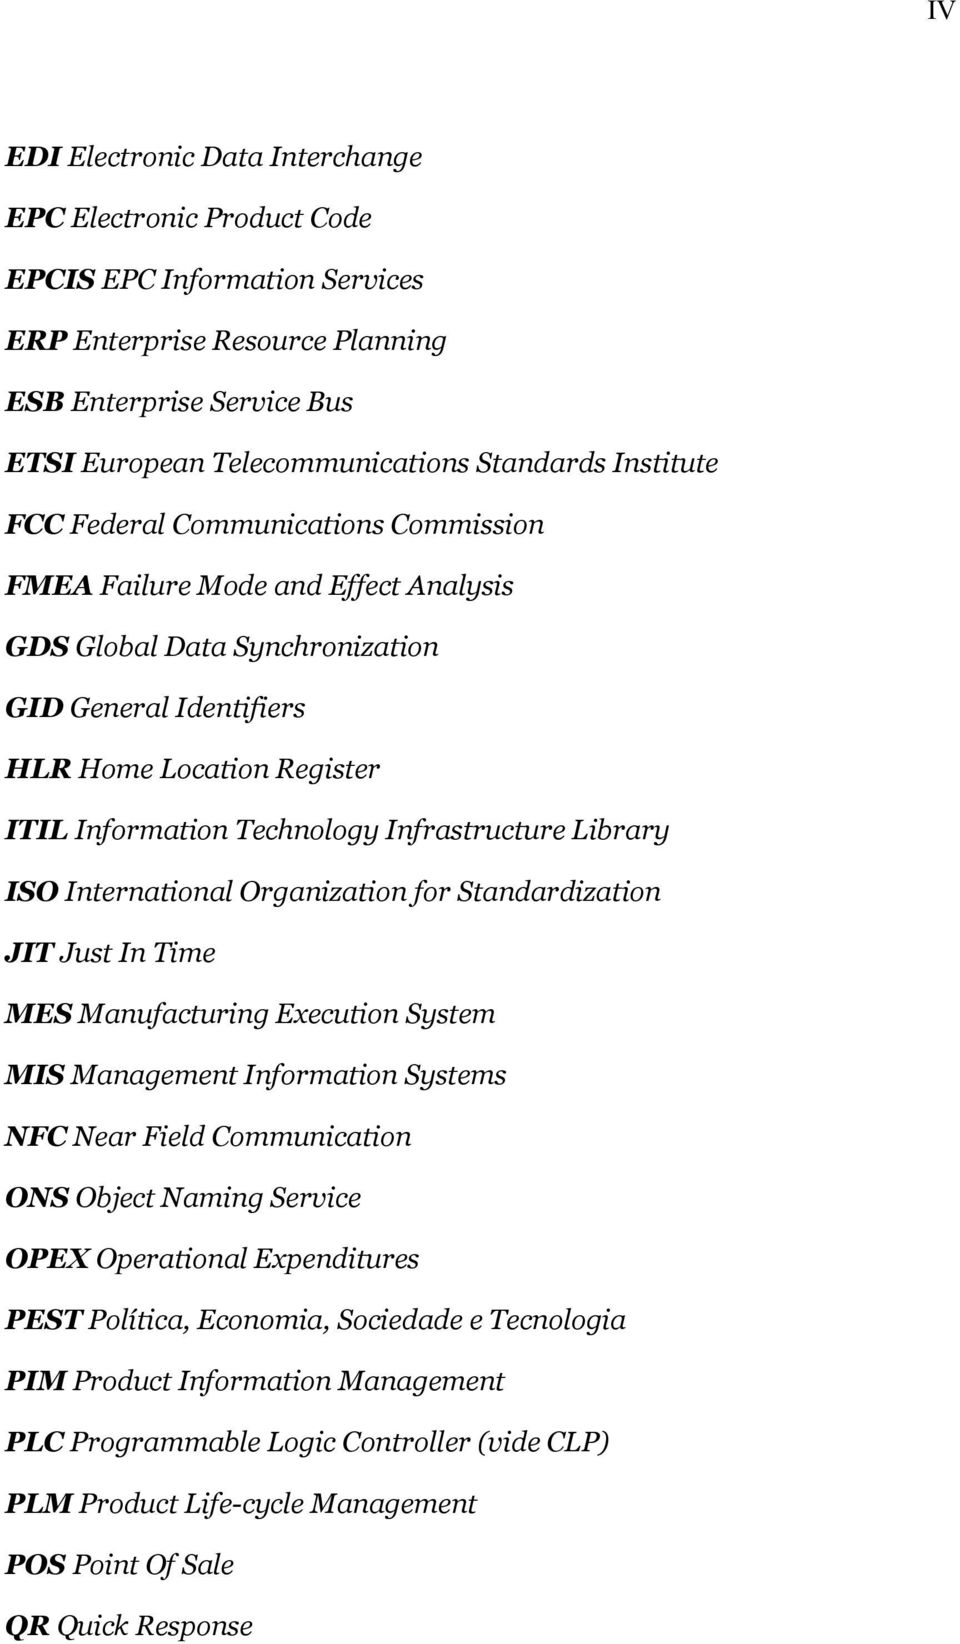 Infrastructure Library ISO International Organization for Standardization JIT Just In Time MES Manufacturing Execution System MIS Management Information Systems NFC Near Field Communication ONS